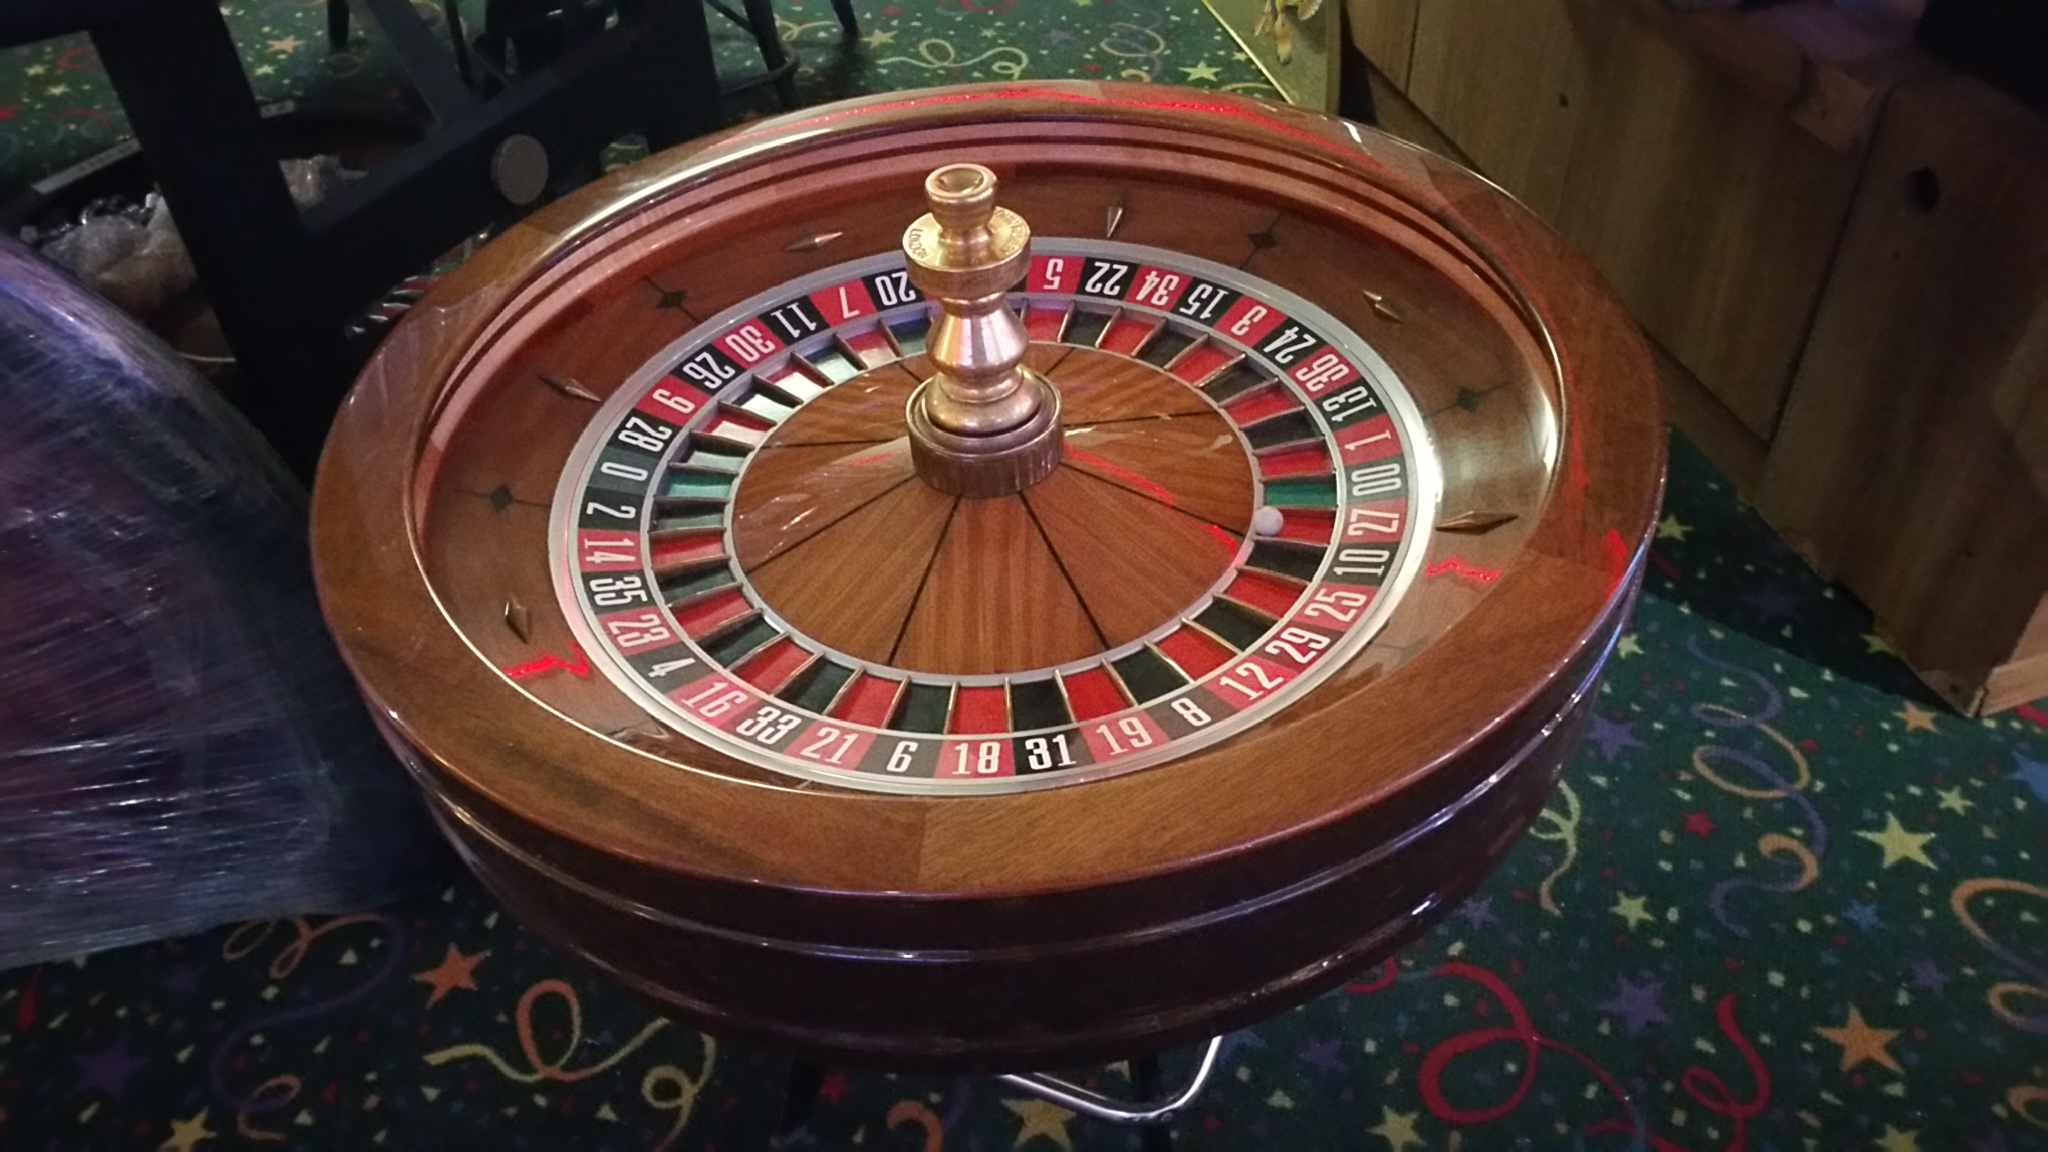 poker chairs with casters game table roulette wheel 32